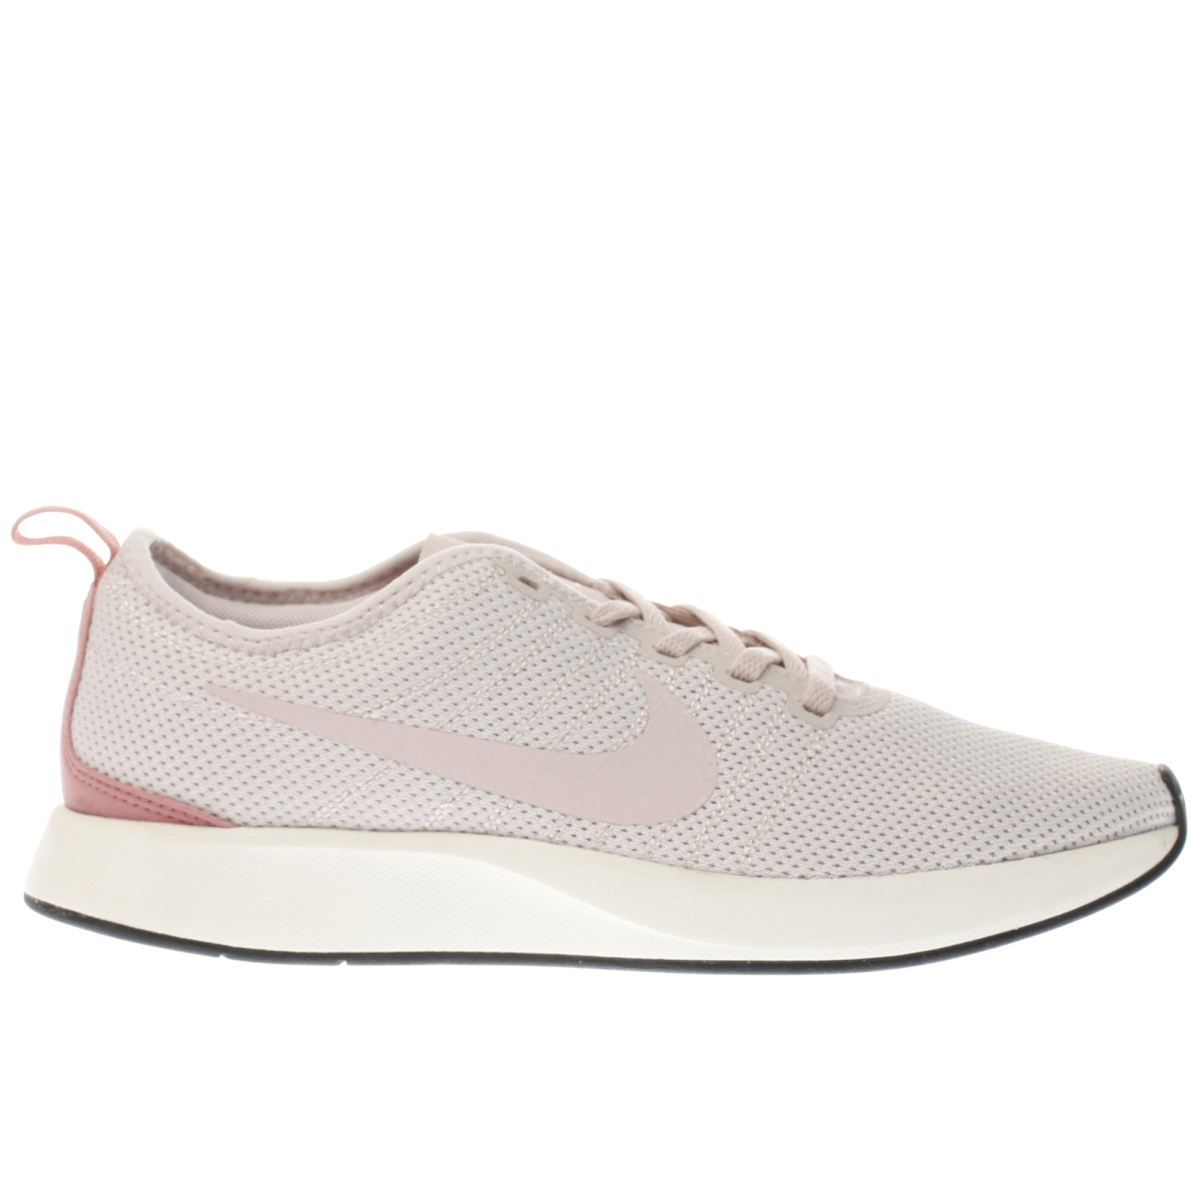 nike pale pink dualtone racer trainers